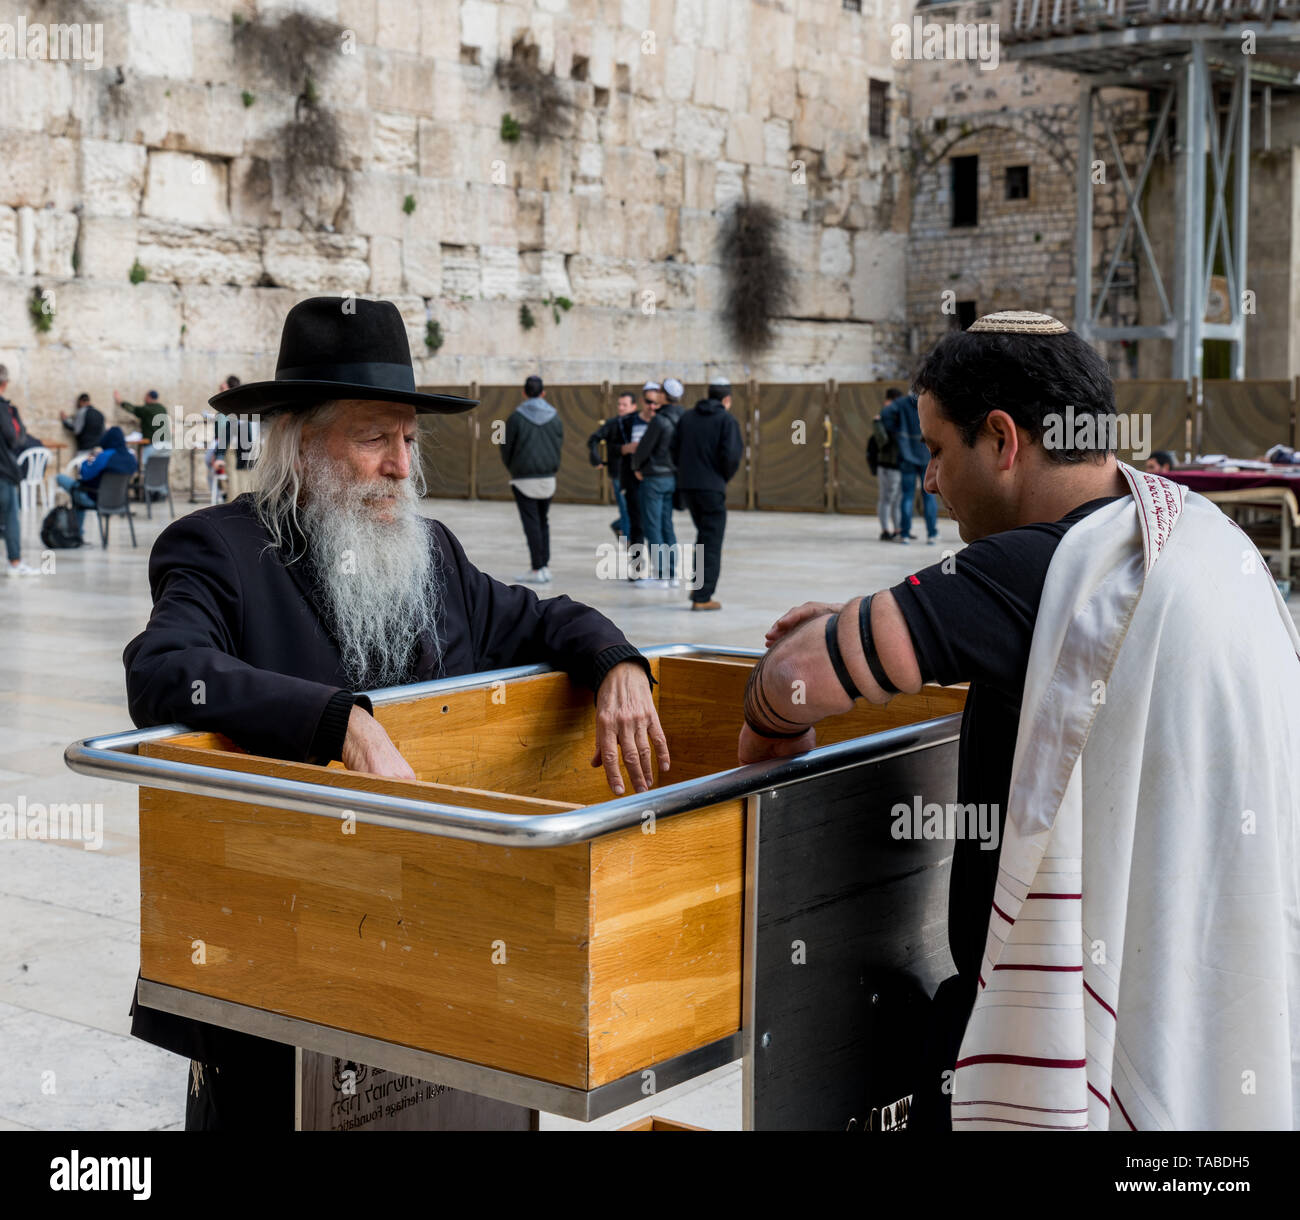 Jerusalem,Israel,27-03-2019:Jew pray at the western wall in Jerusalem, this is the most holy place of the old city of Jerusalem - Stock Image